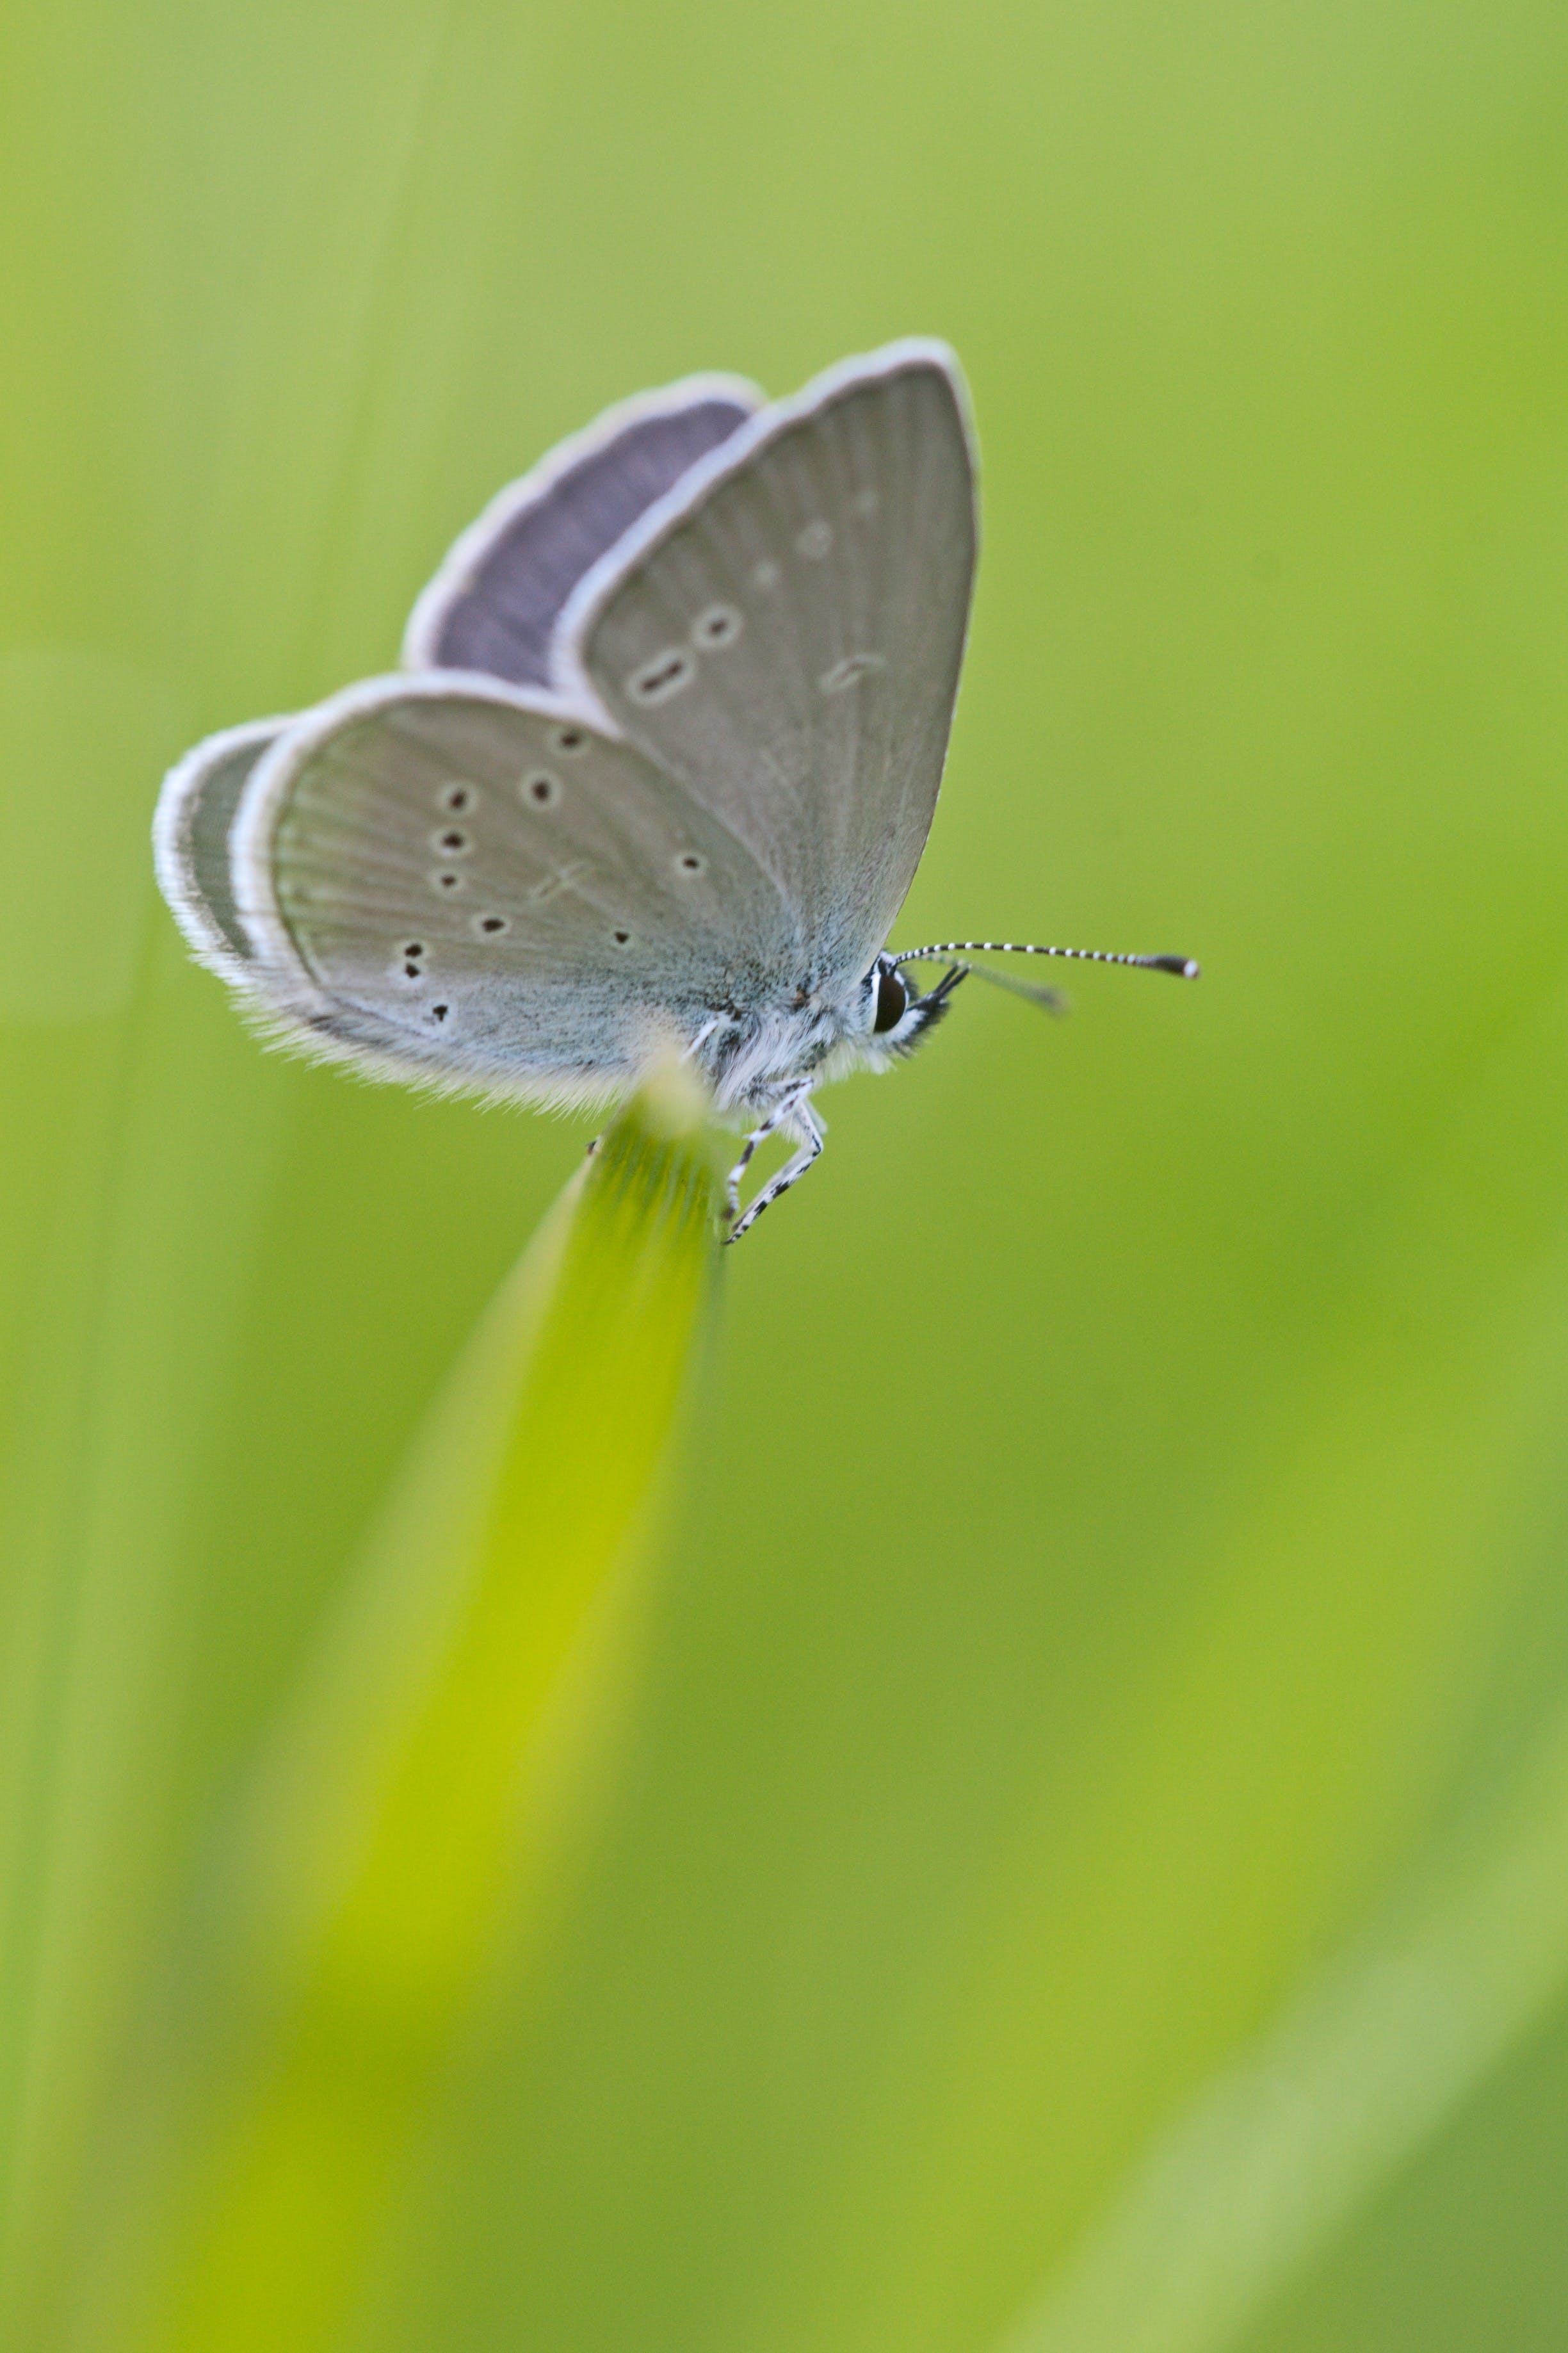 Gray White Moth Perched on Green Grass